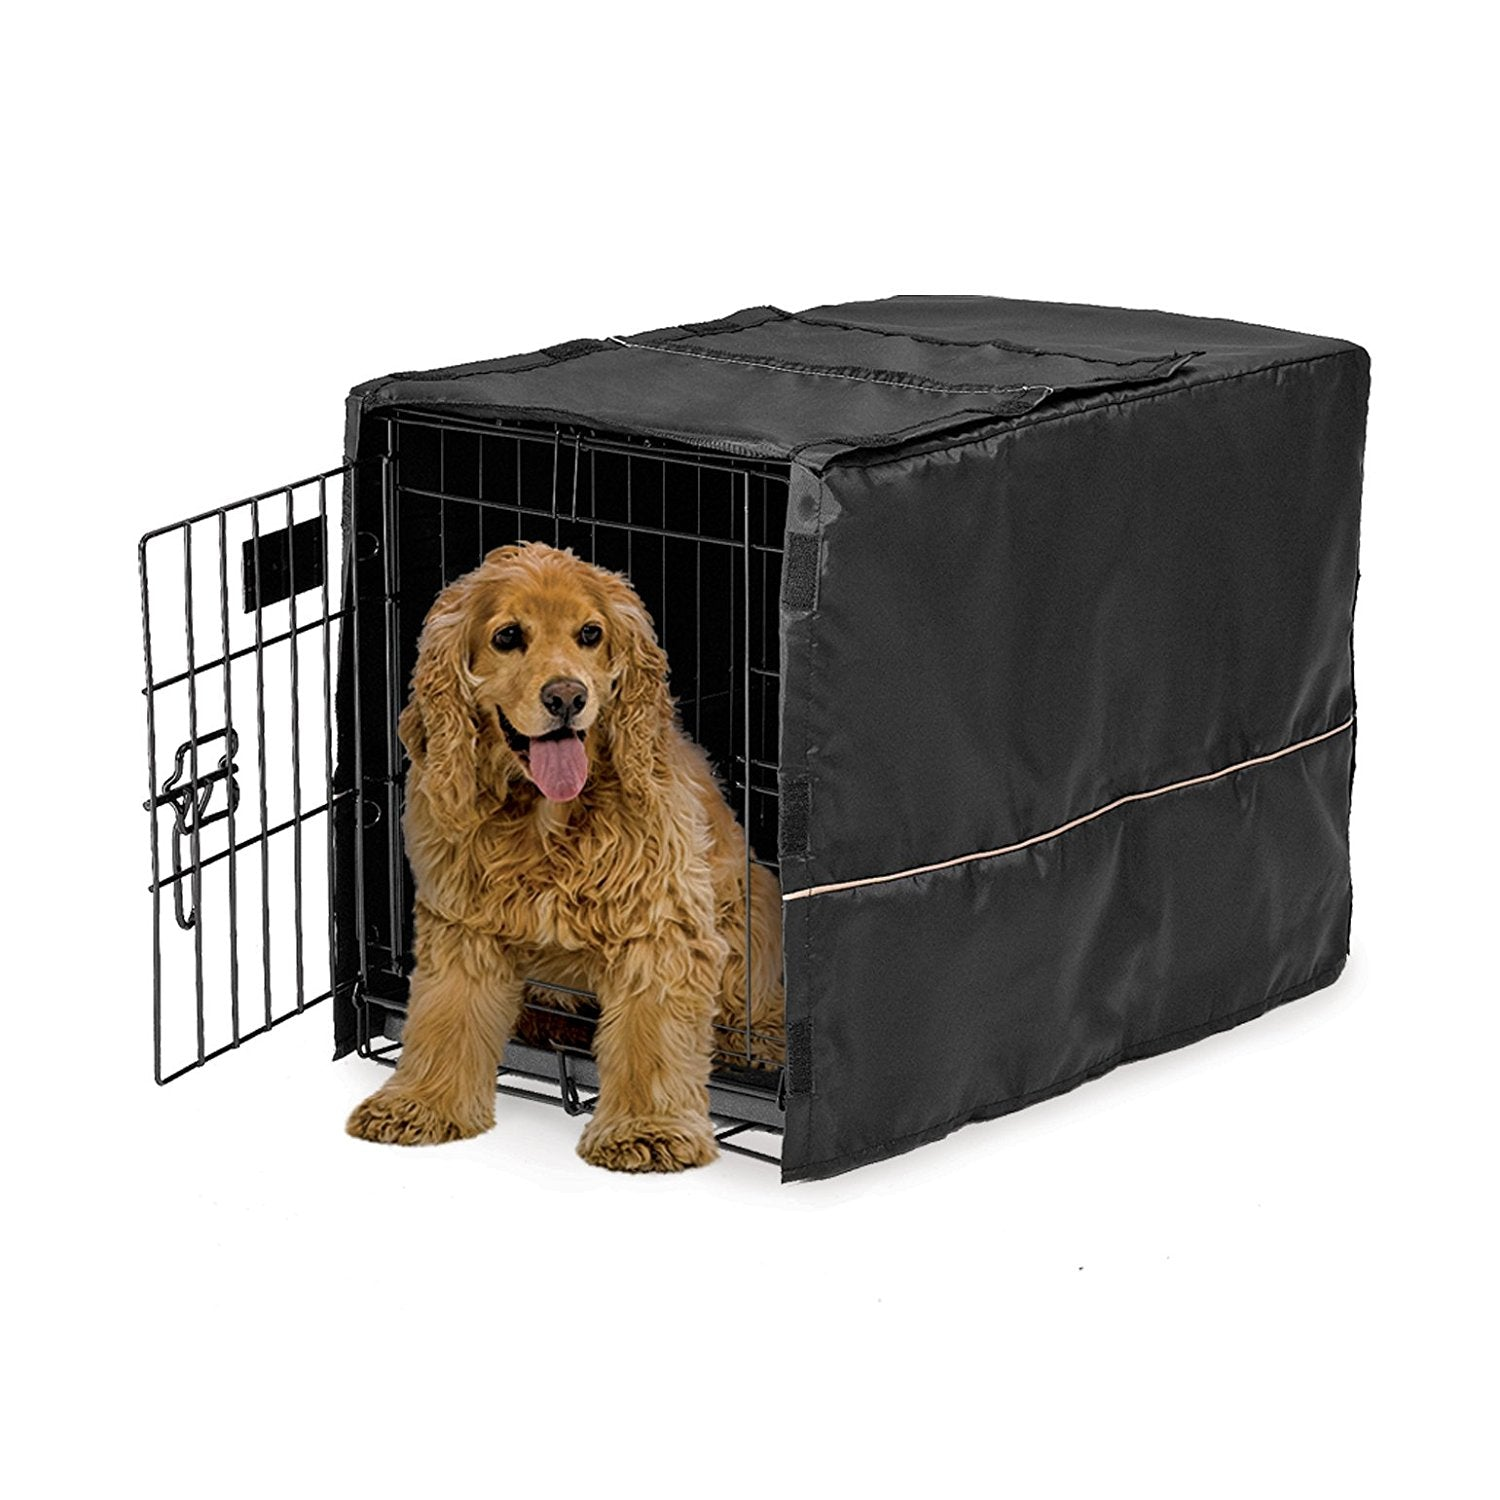 Midwest CVR-30 Quiet Time Pet Crate Cover from Midwest